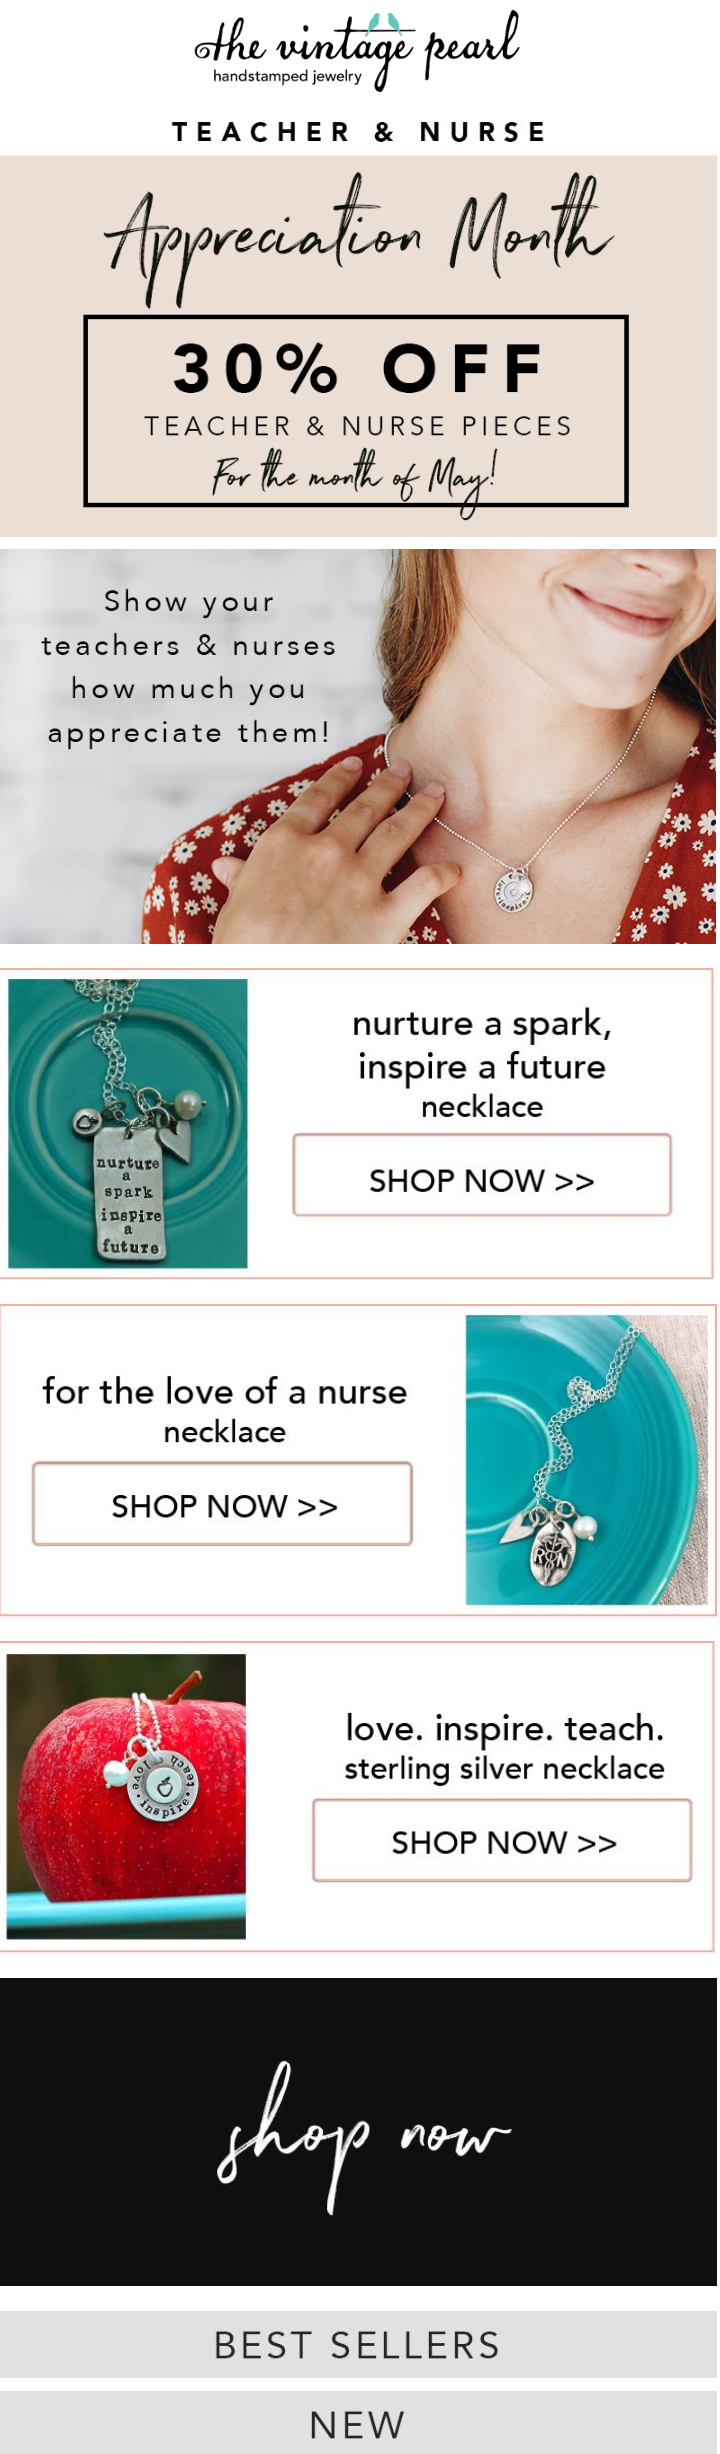 the-vintage-pearl-gifts-for-teachers-and-nurses-30-off